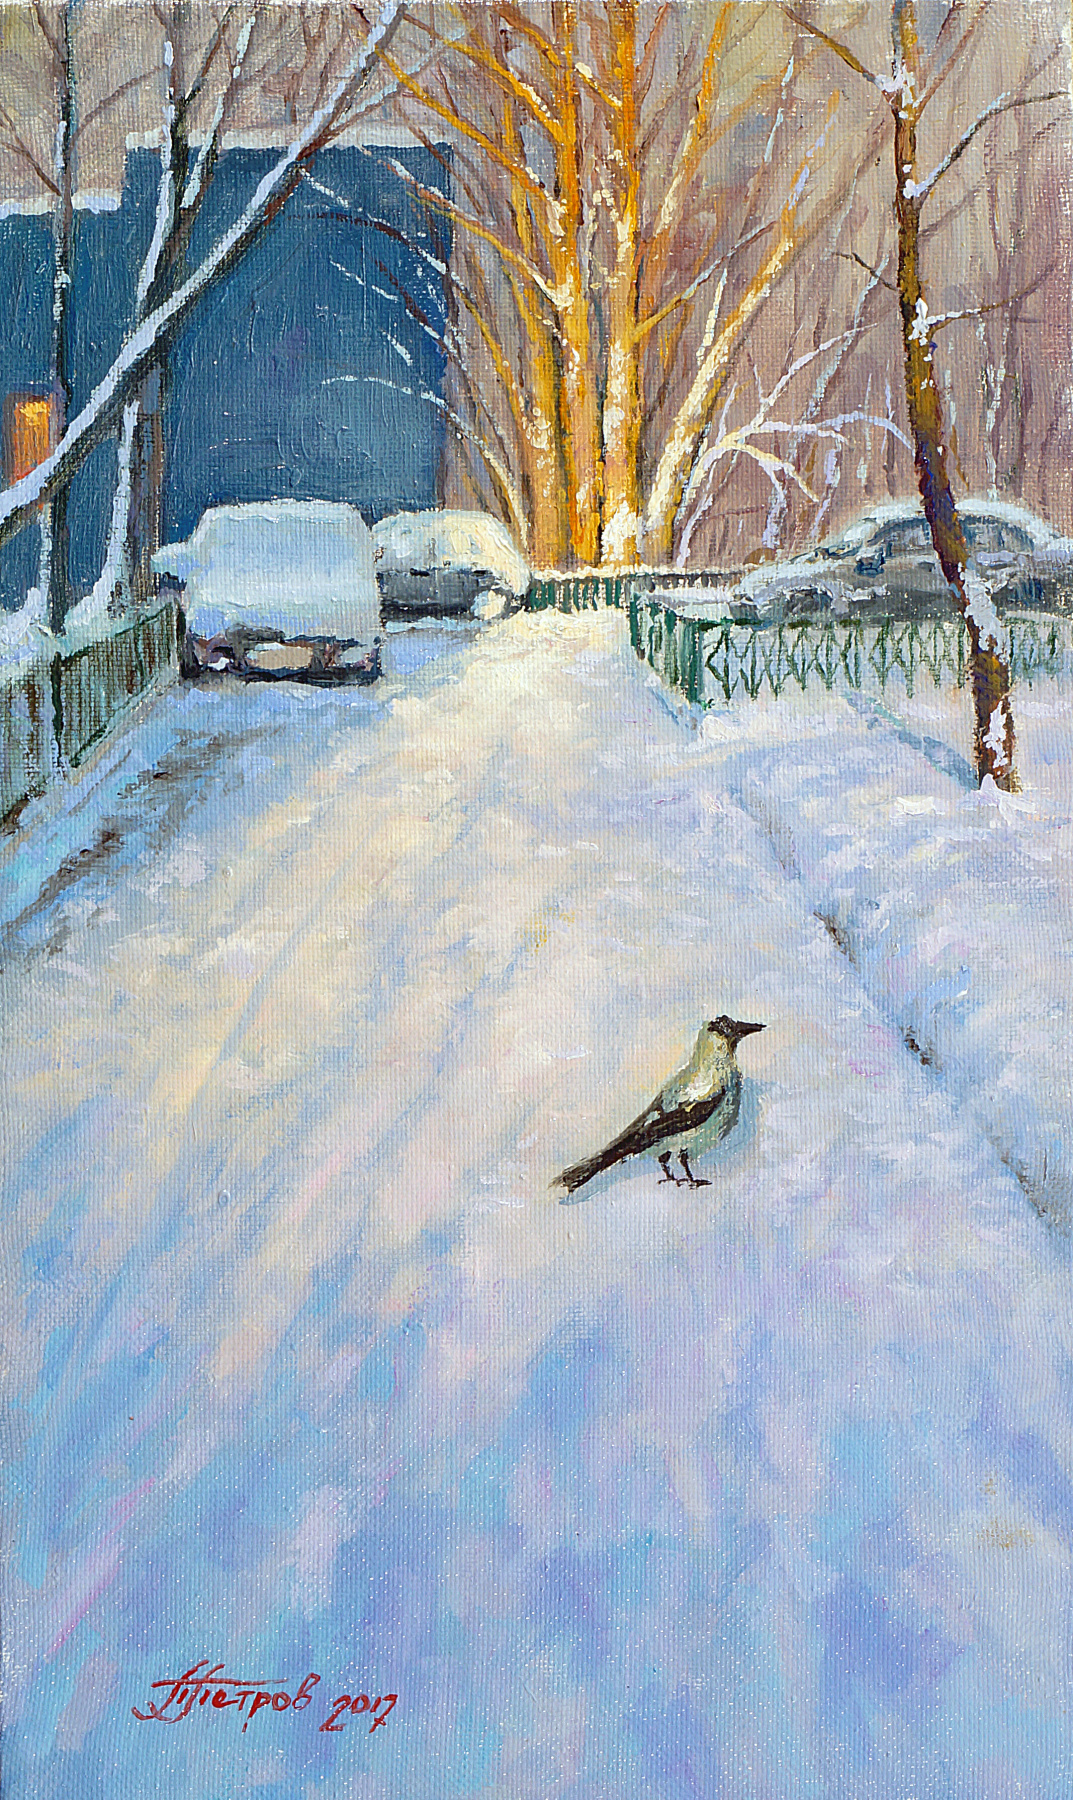 Pavel Evgenievich Petrov. The yard in which I live